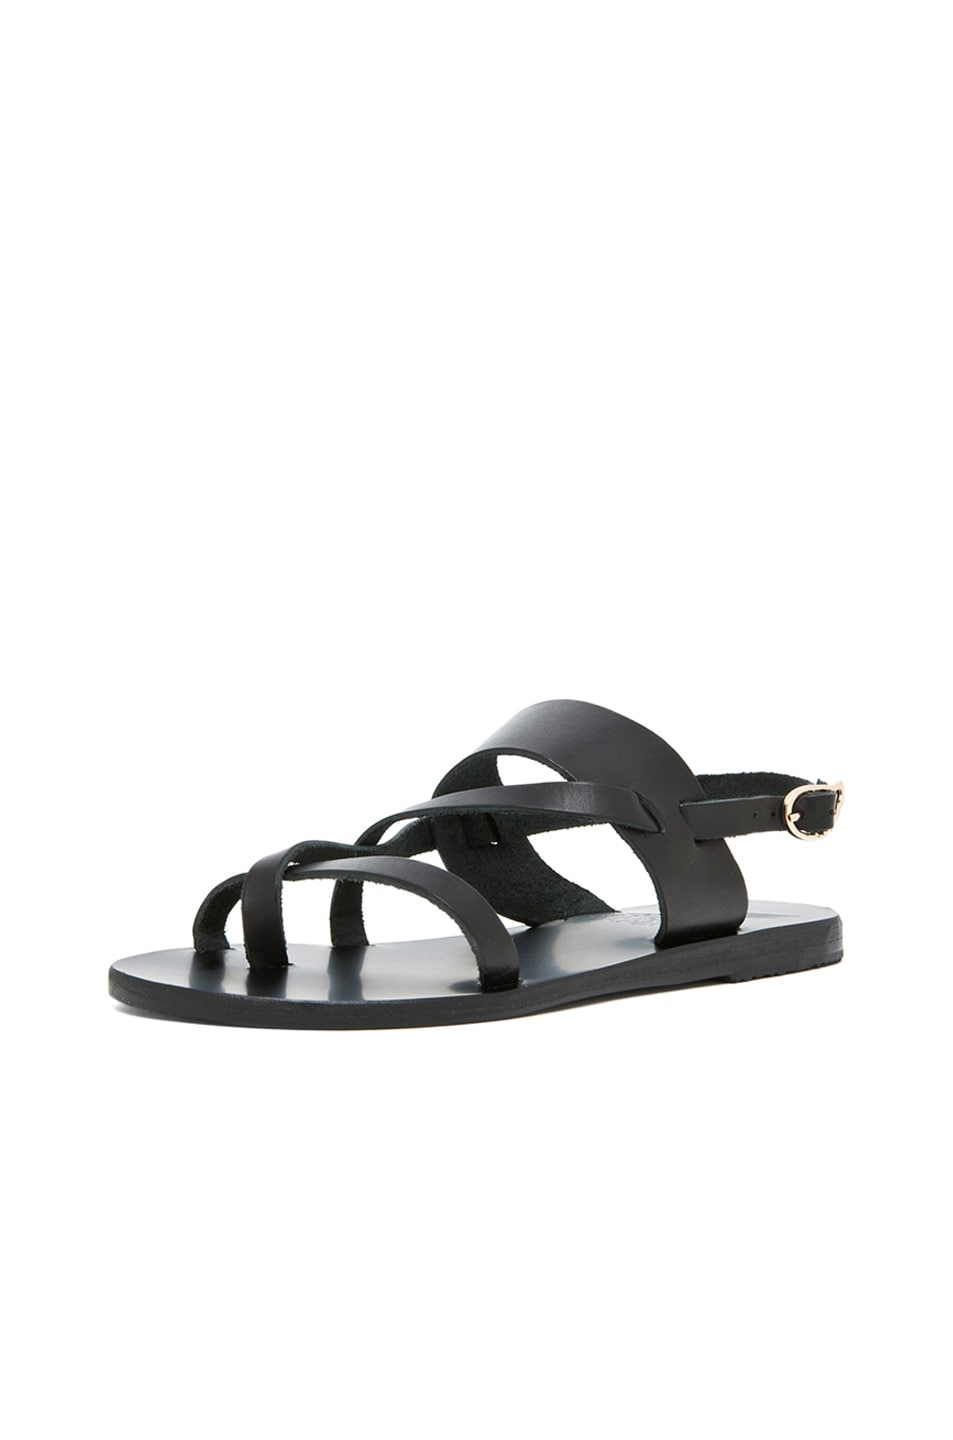 Image 2 of Ancient Greek Sandals Alethea Calfskin Leather Sandals in Black